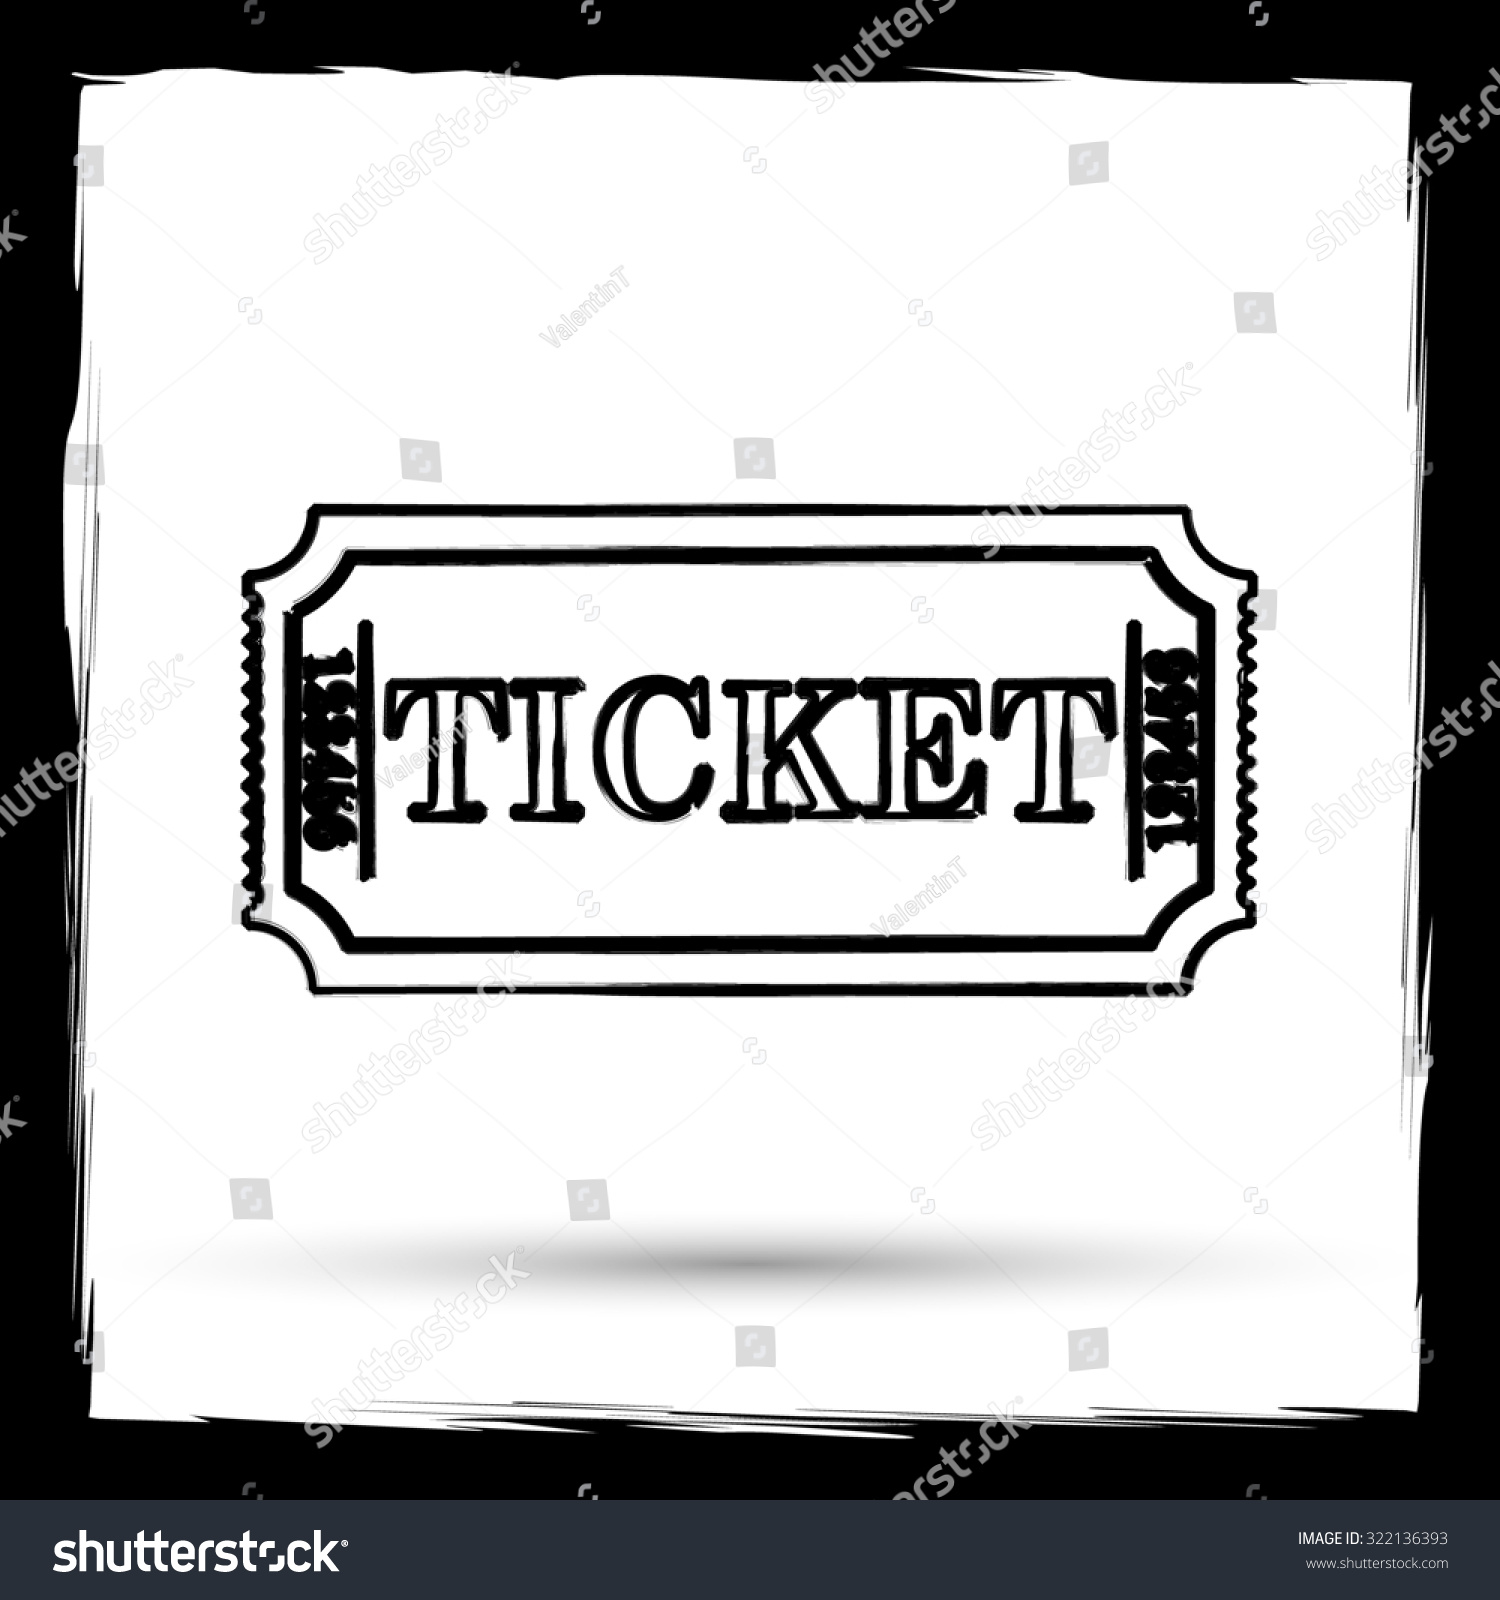 cinema ticket icon internet button on white background outline save to a lightbox